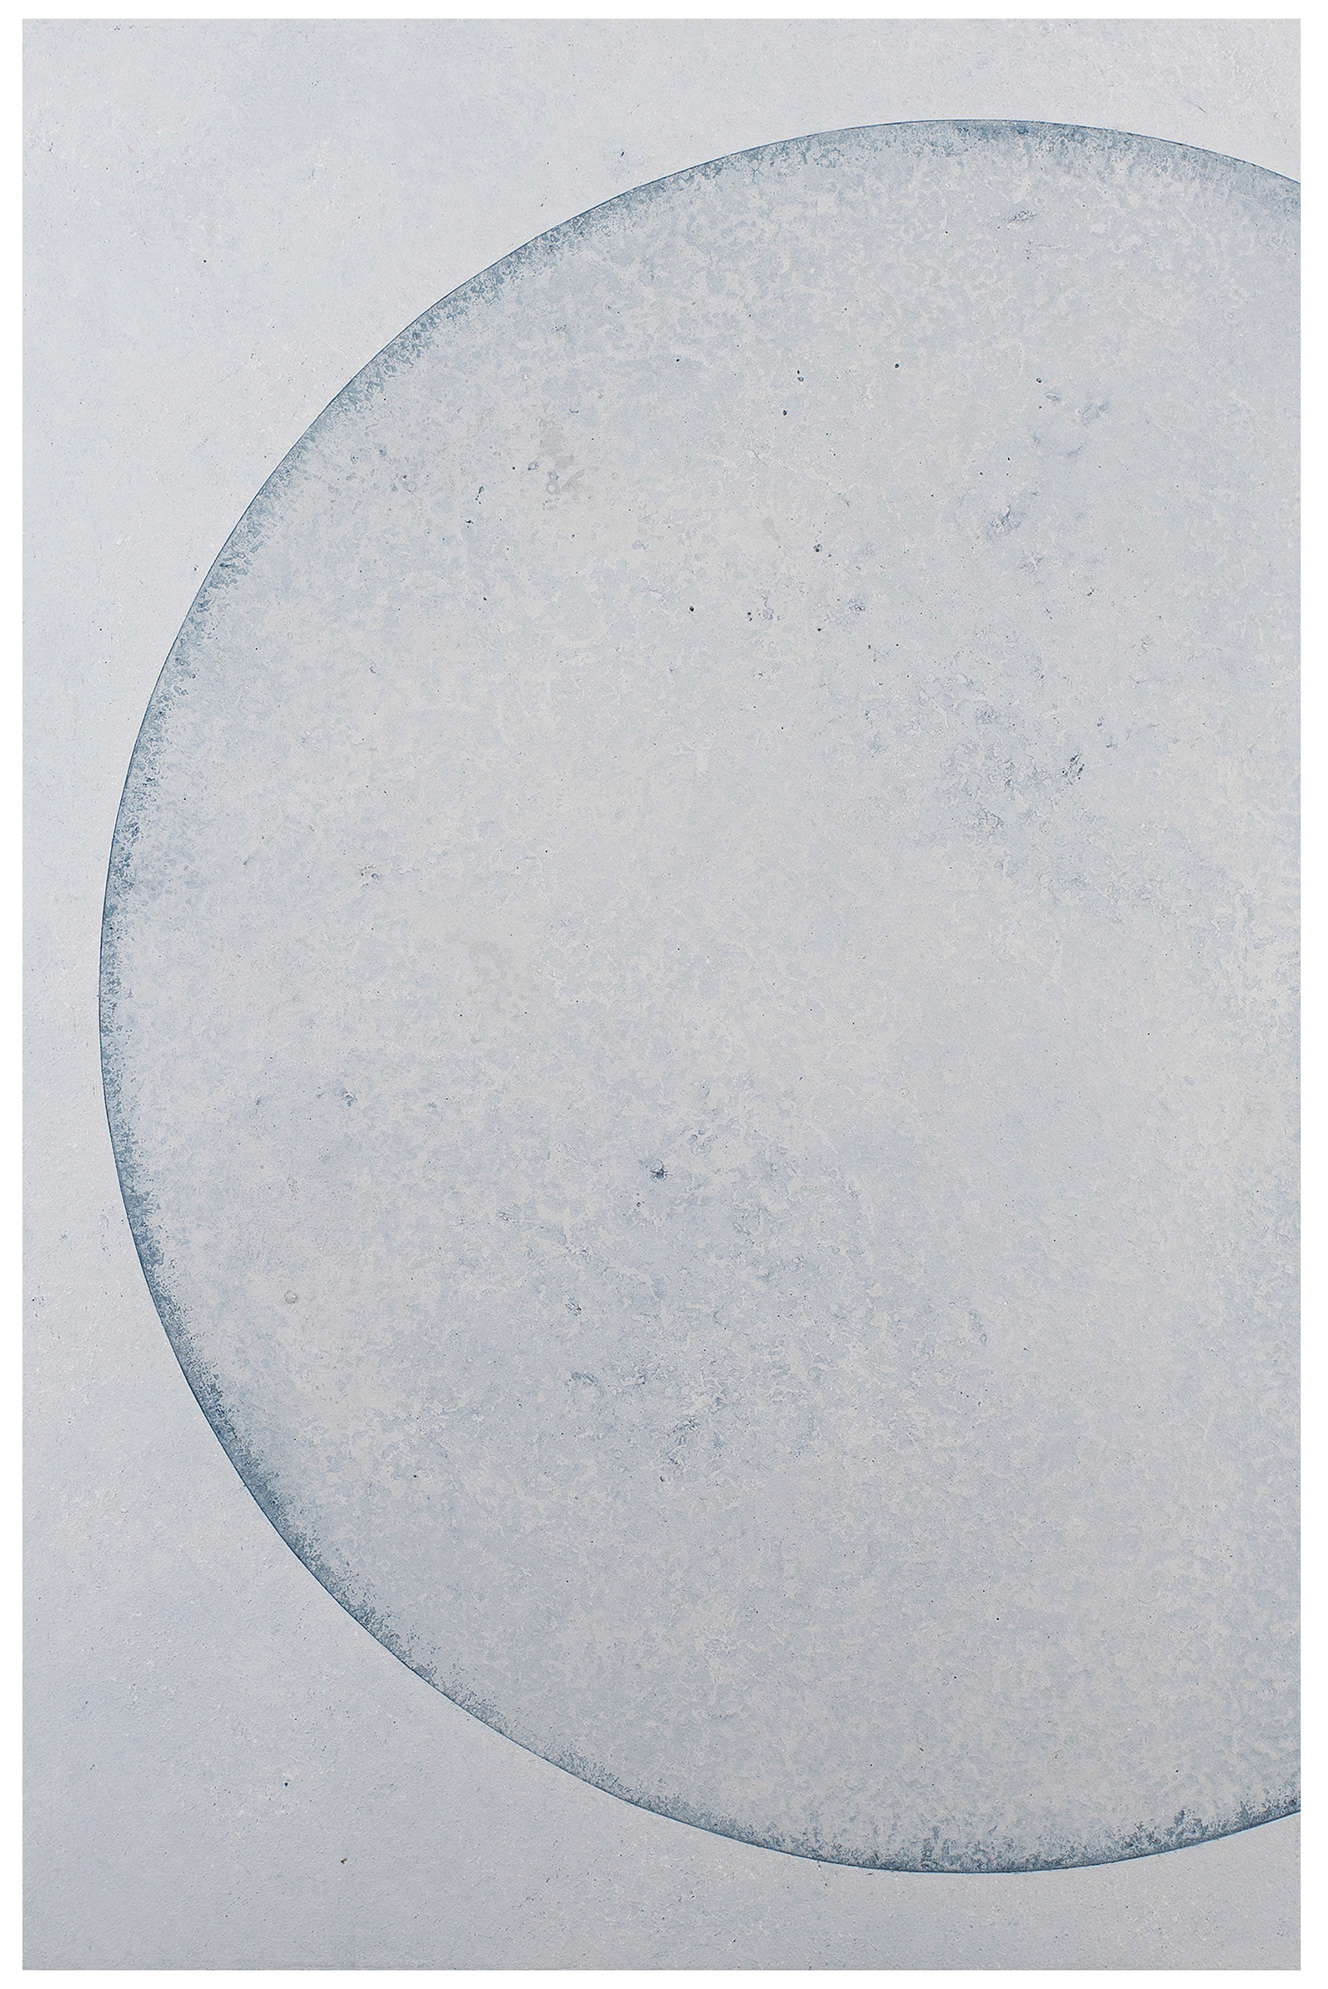 La lune - Laque finition cirée - Dimension : 60 x 90 cm